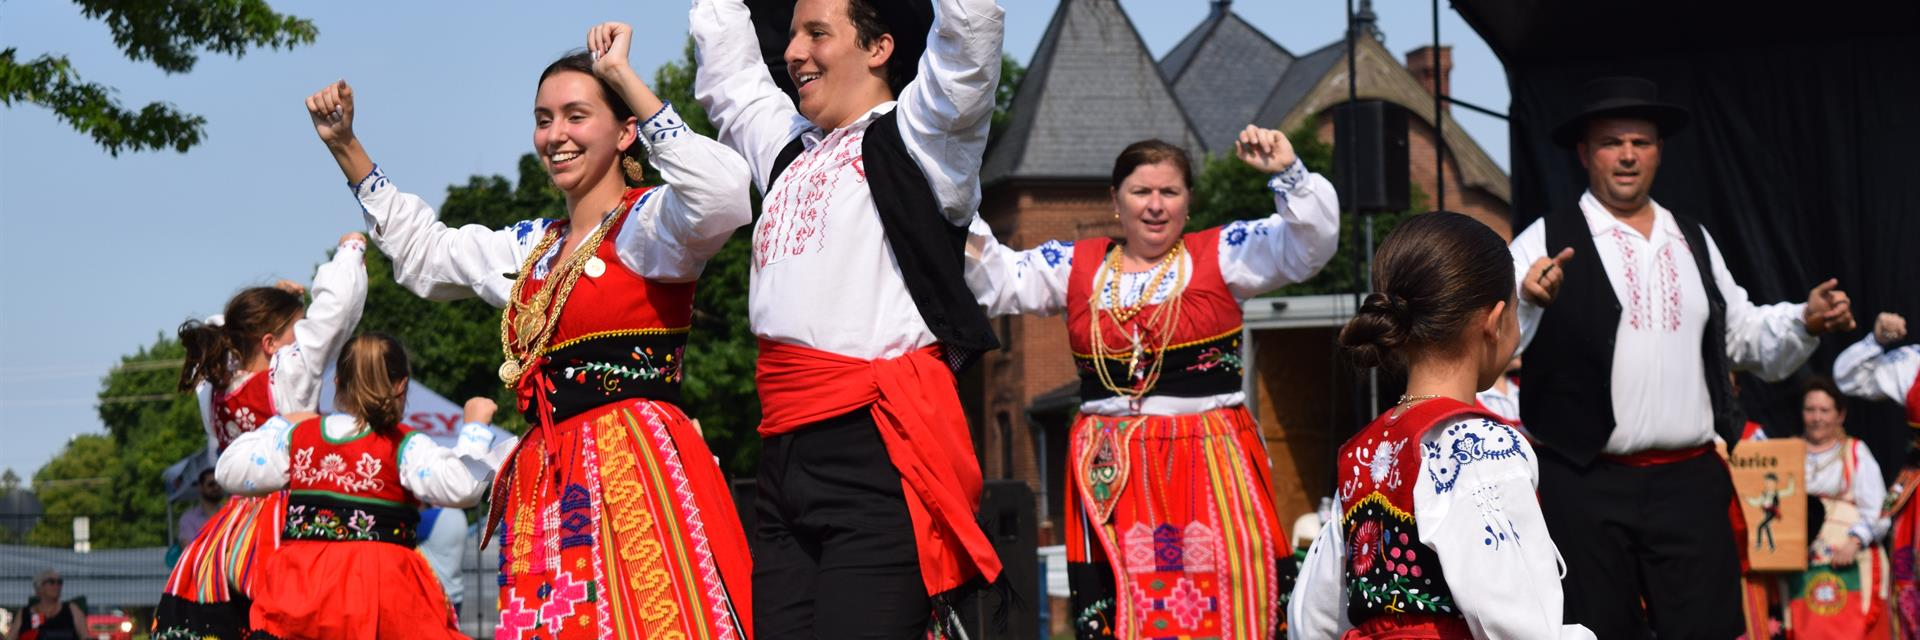 Portuguese dancers in the park.